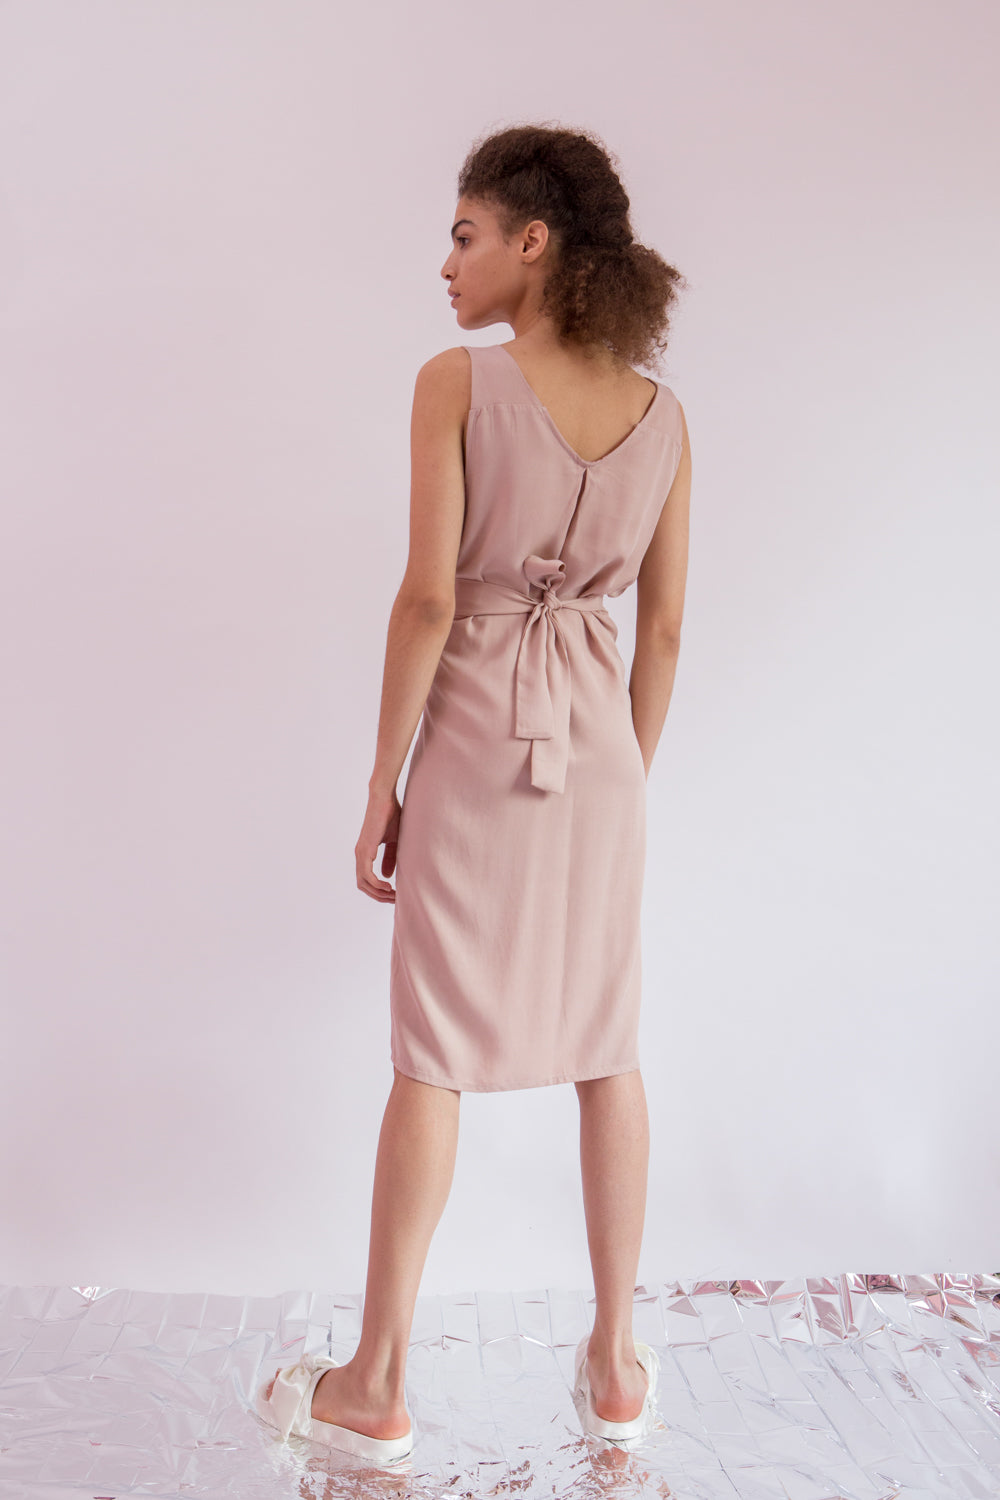 Dress Wako in Tencel